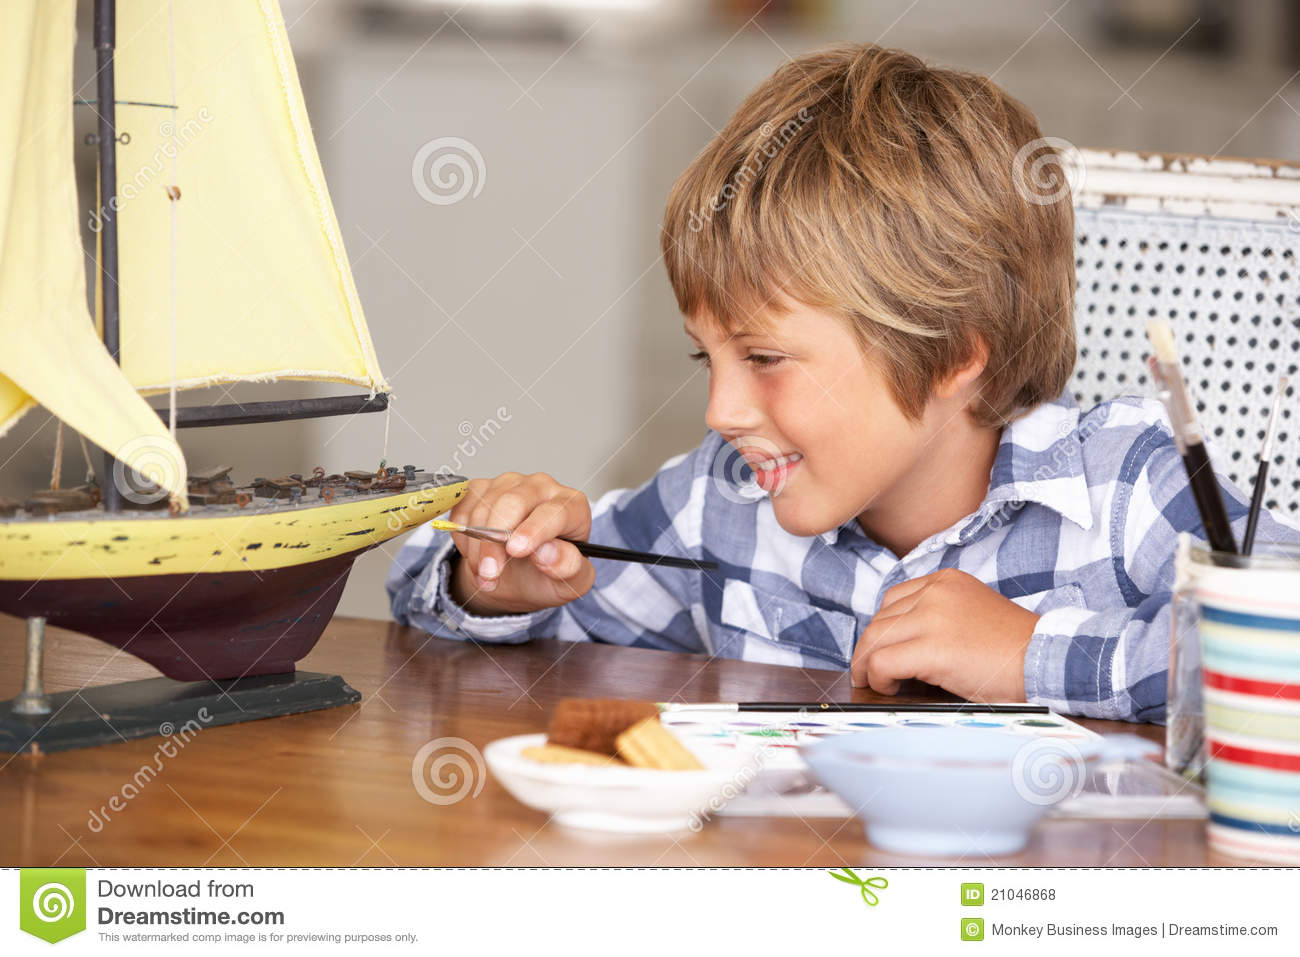 Happy Young Boy Making Model Ship Royalty Free Stock Photos ...model boy